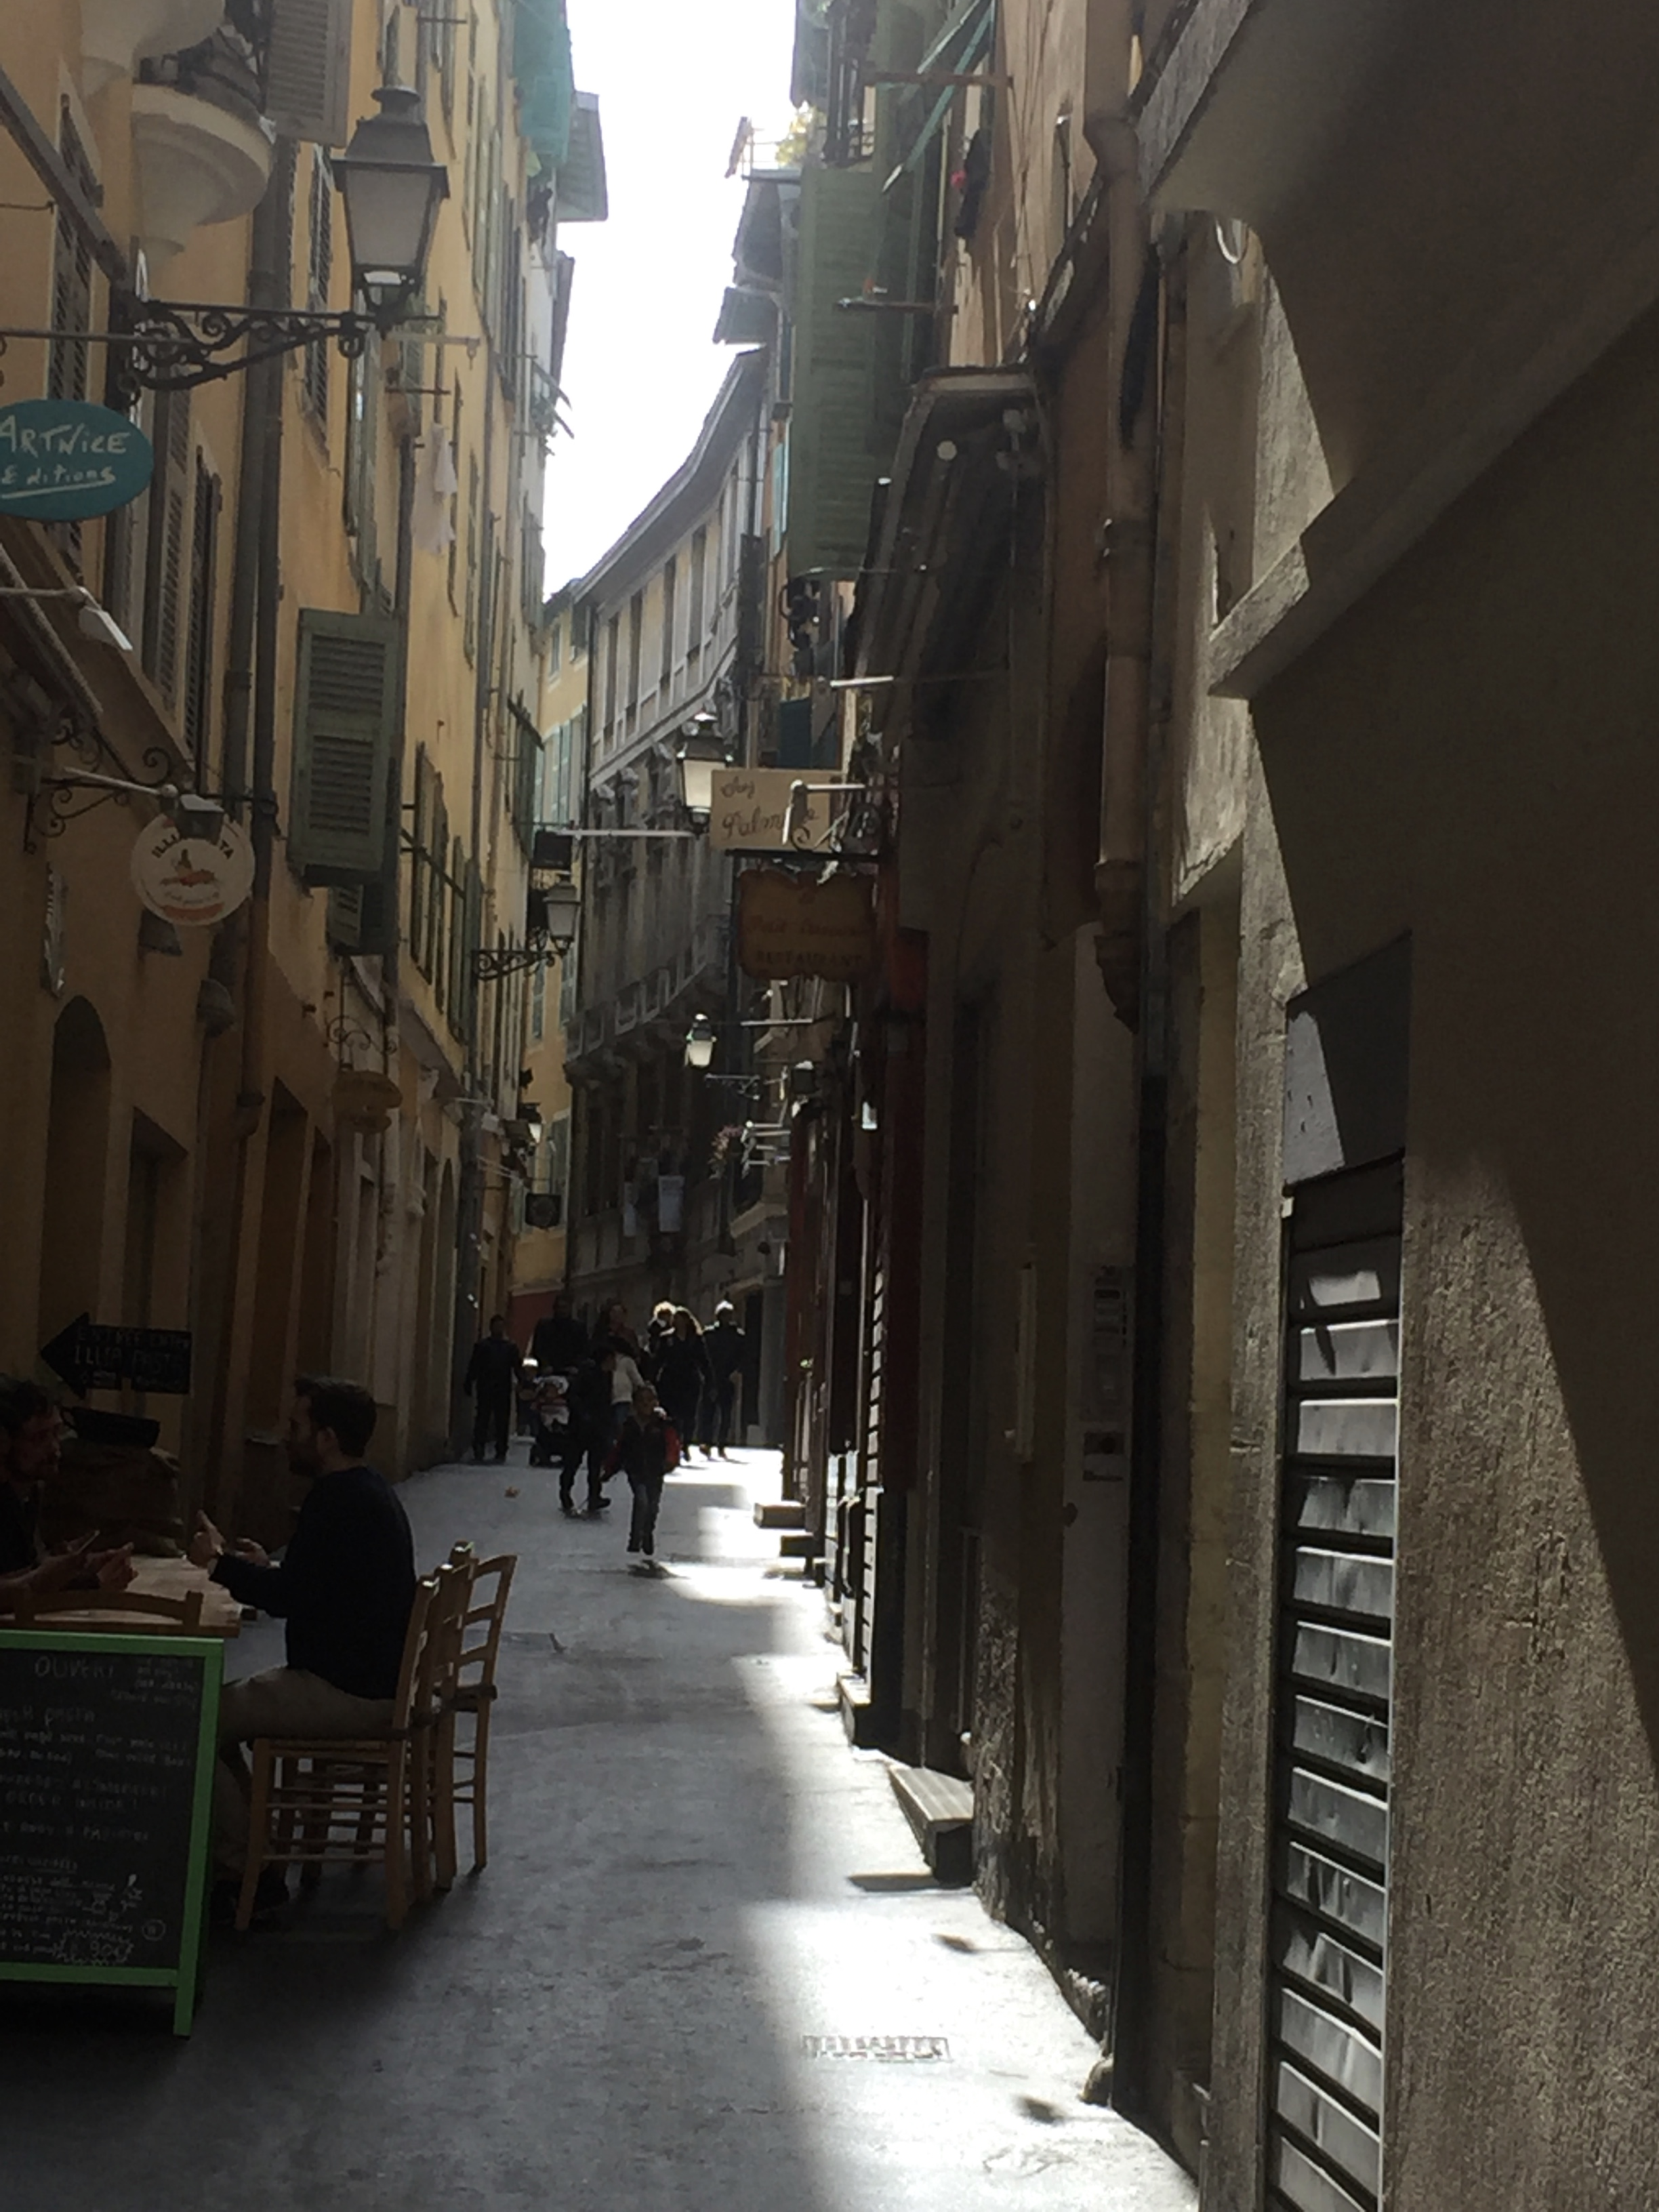 Rue Droite - our Airbnb street in Nice